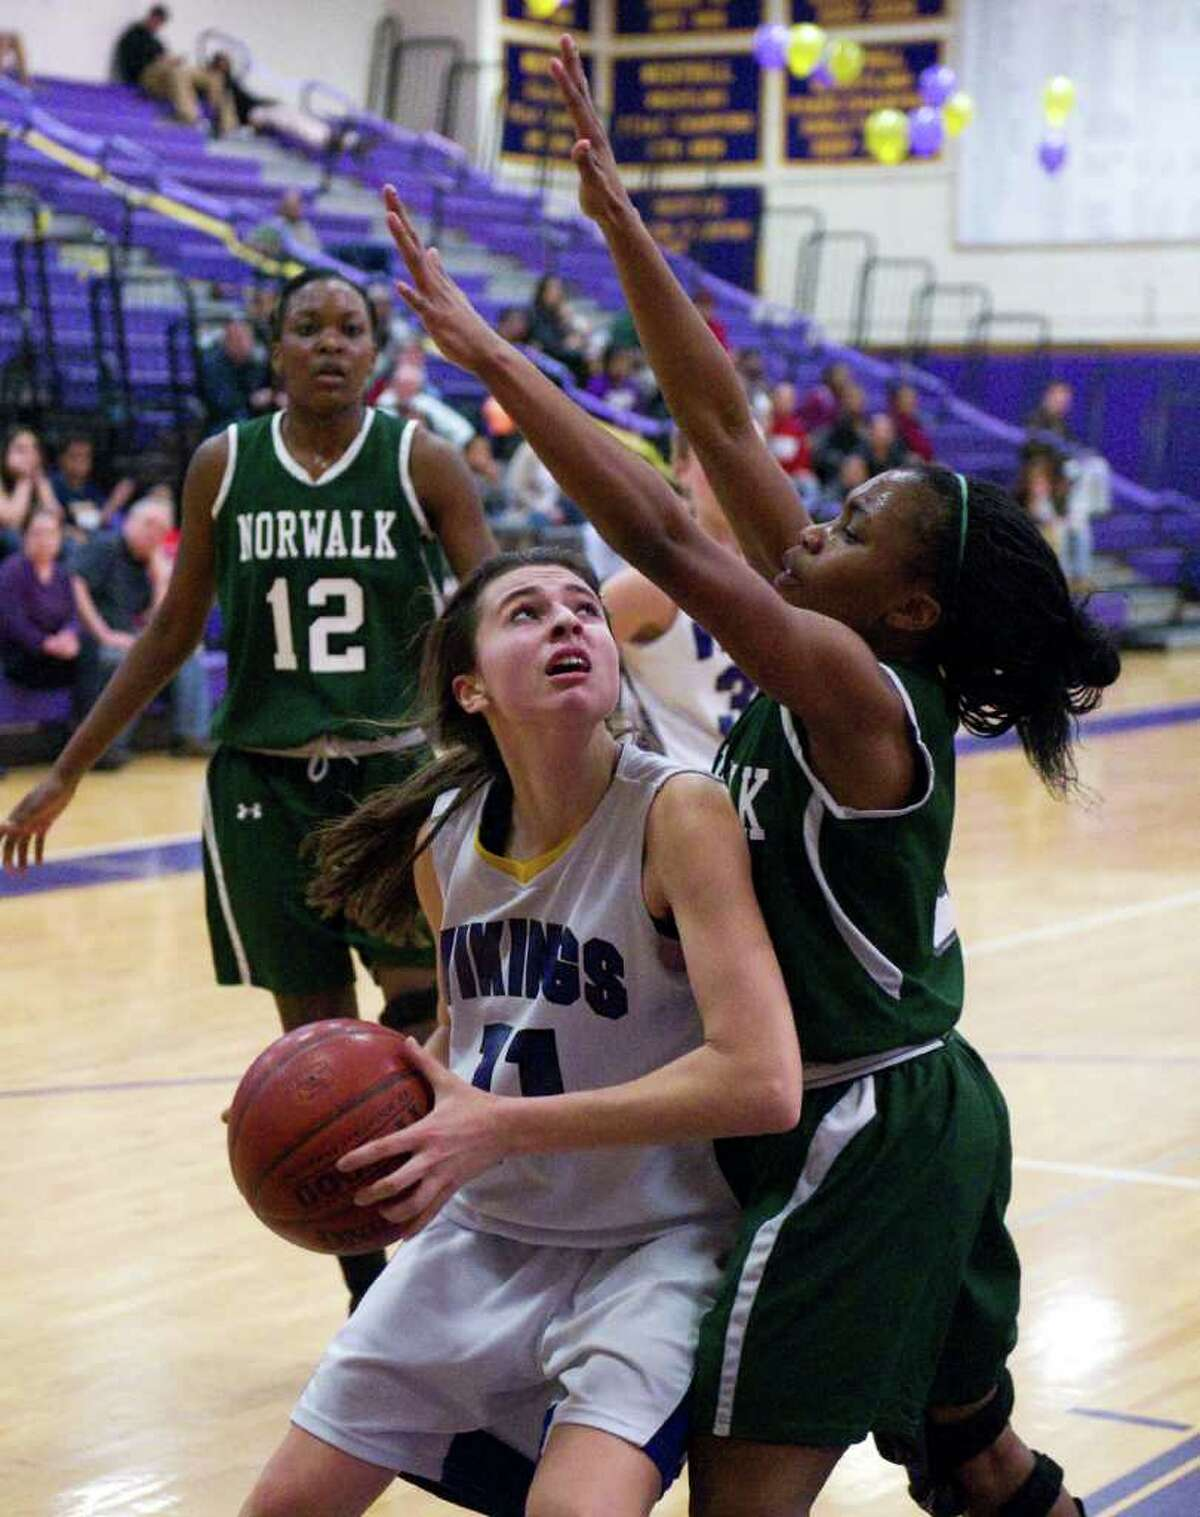 Westhill's Megan D'Alessandro looks to shoot as Norwalk's Zayna Fukton blocks as Westhill High School hosts Norwalk in a girls basketball game in Stamford, Conn., February 15, 2012.